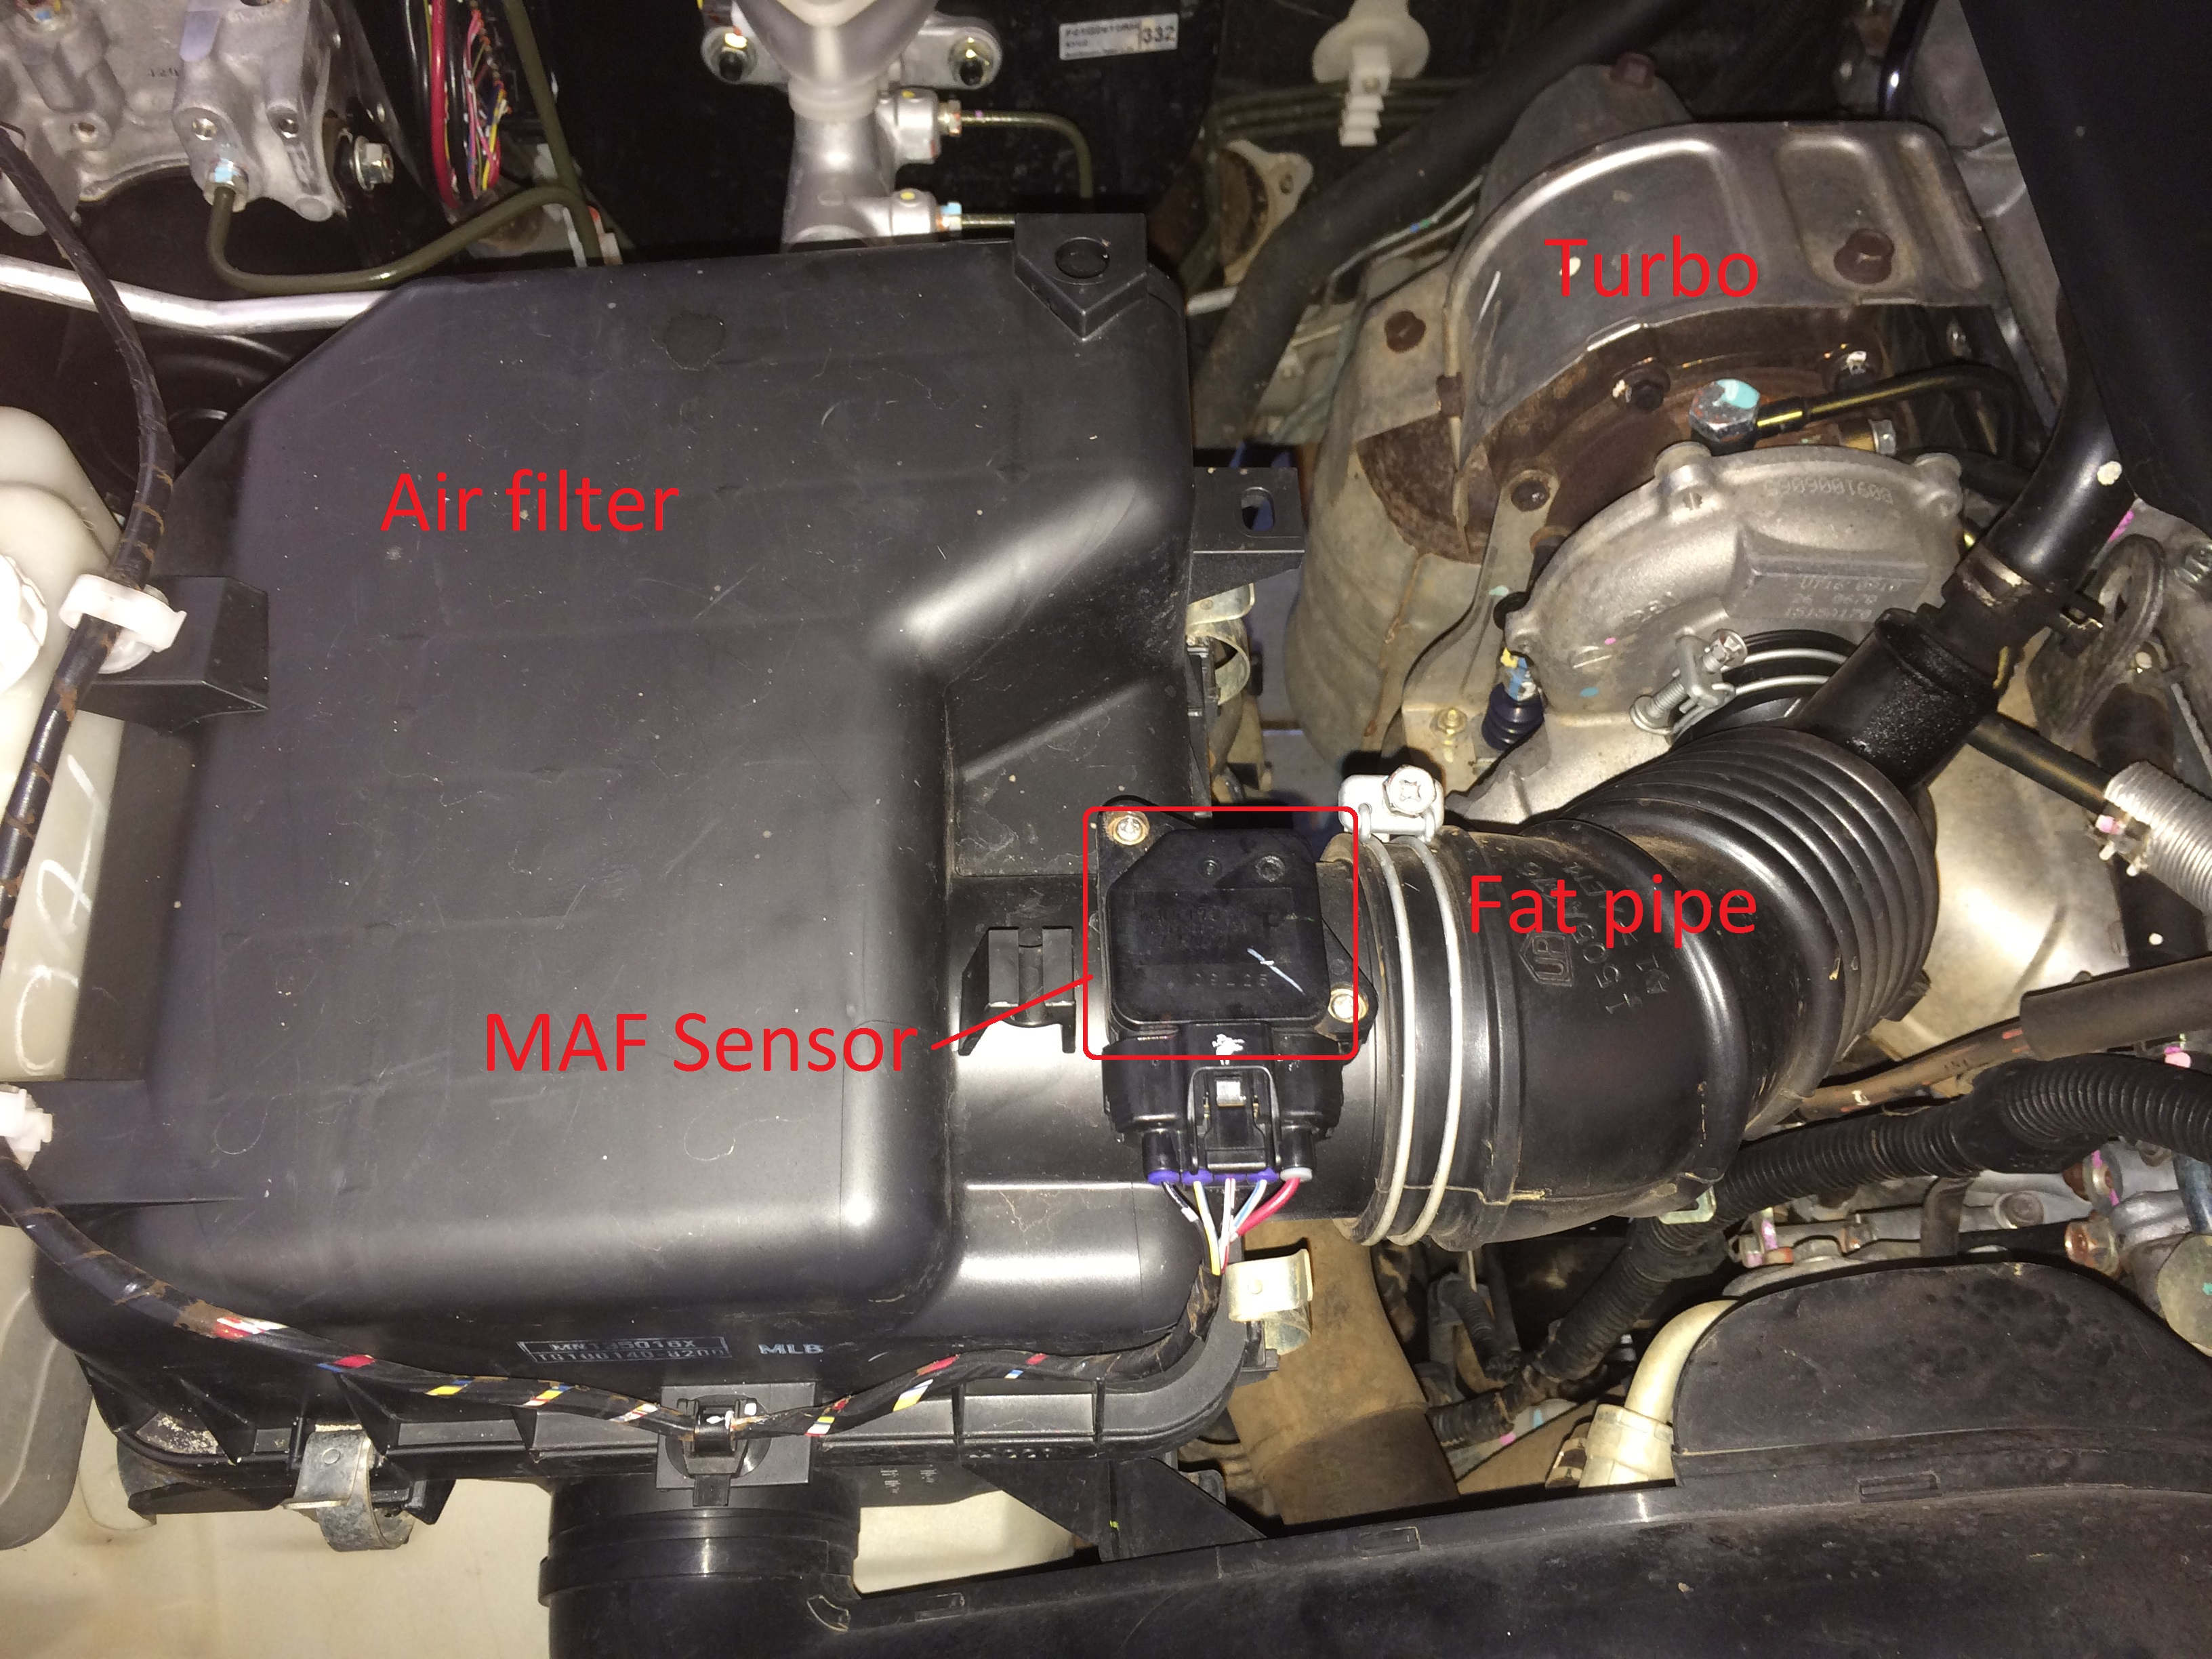 How To Clean The Maf Sensor On A 4wd Nissan Navara Fuel Filters Location Pb Challenger